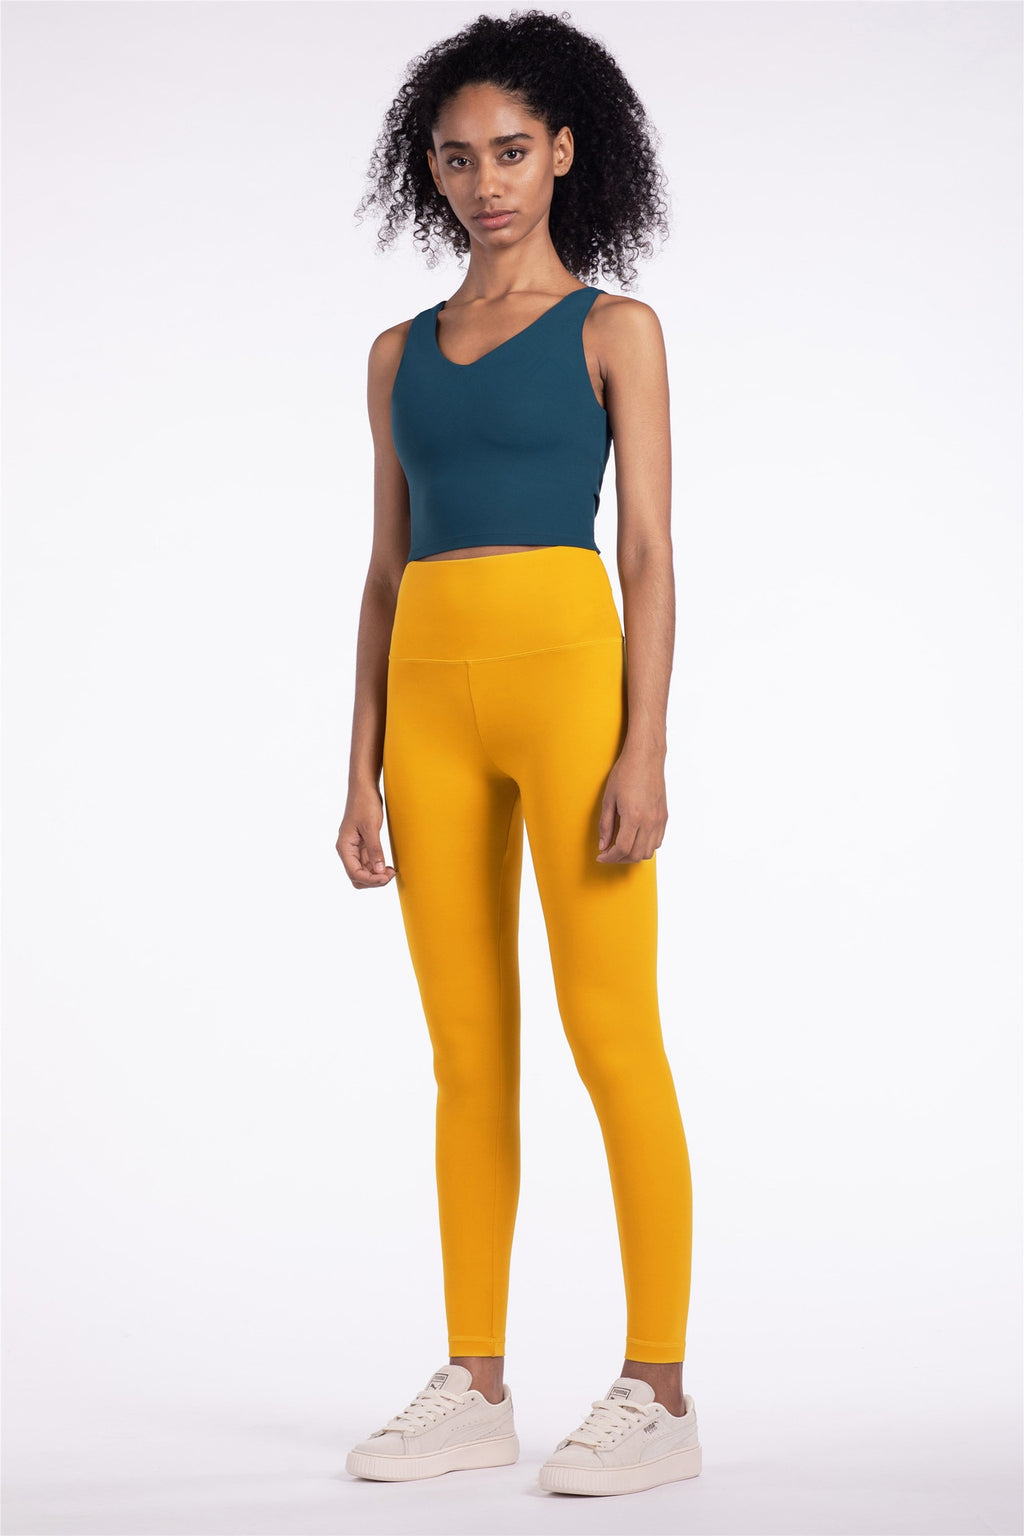 Astoria LUXE Scrunch 2.0 Legging - Yellow